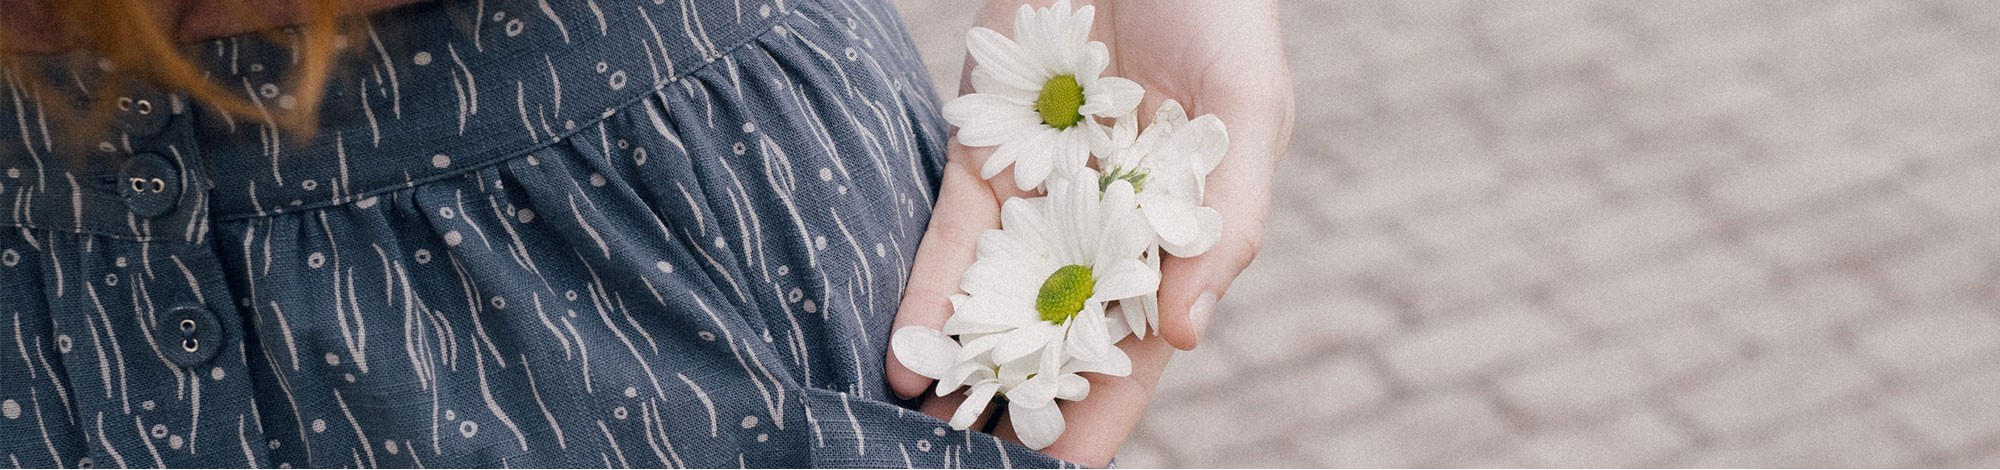 All Skirts are made based on GOTS and Fair Trade standards, making a sustainable and ethical garment.